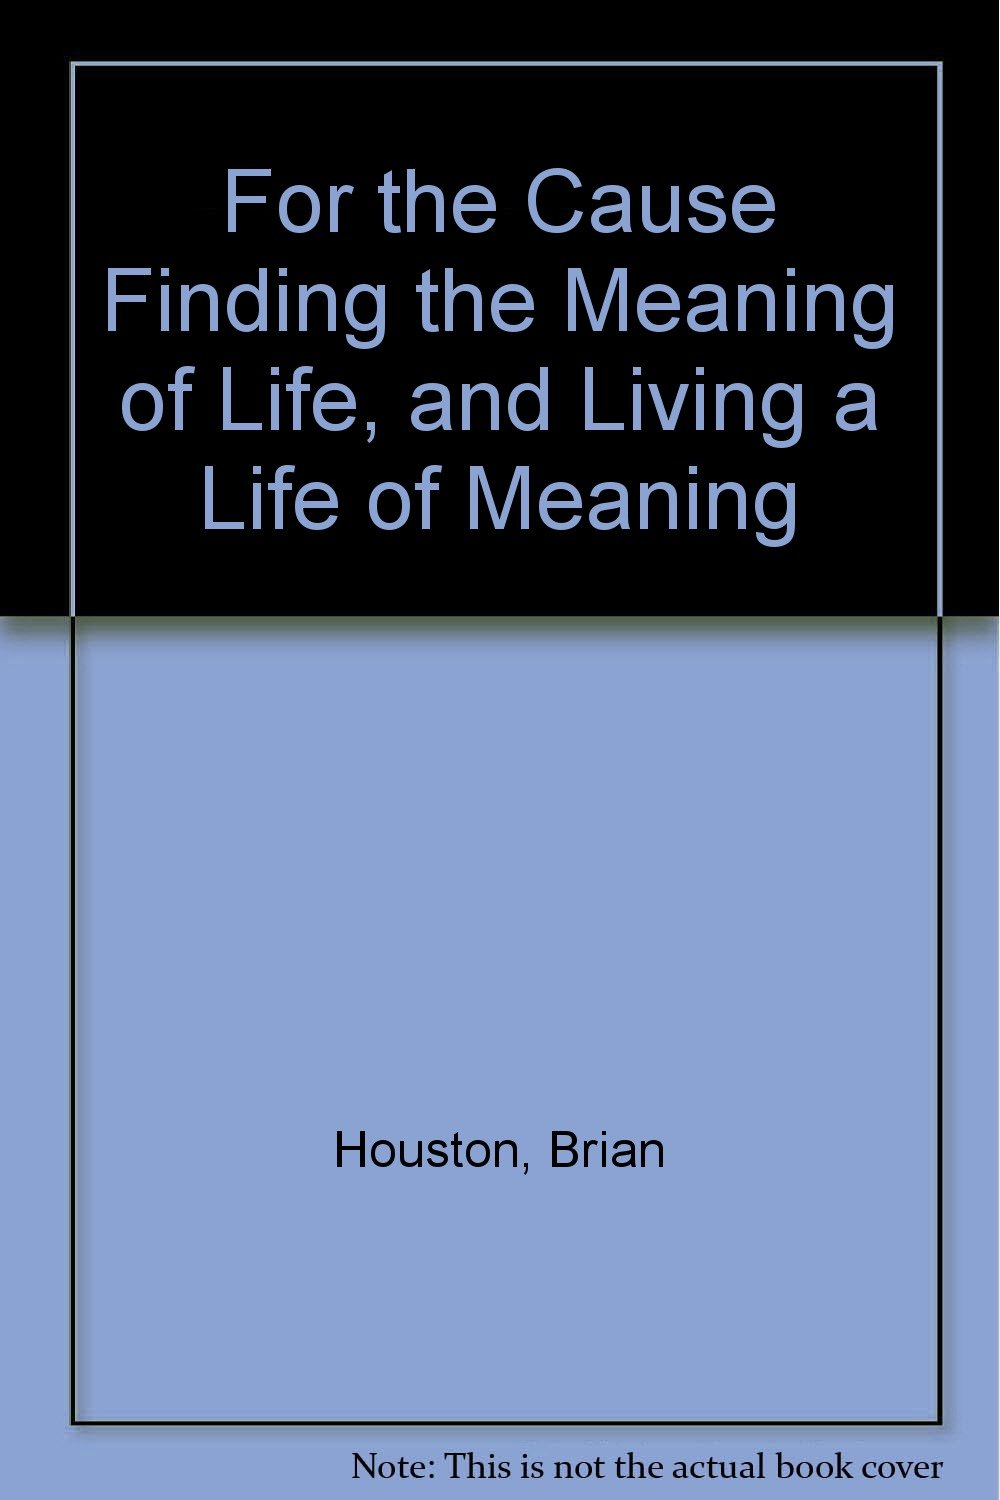 For the Cause Finding the Meaning of Life, and Living a Life